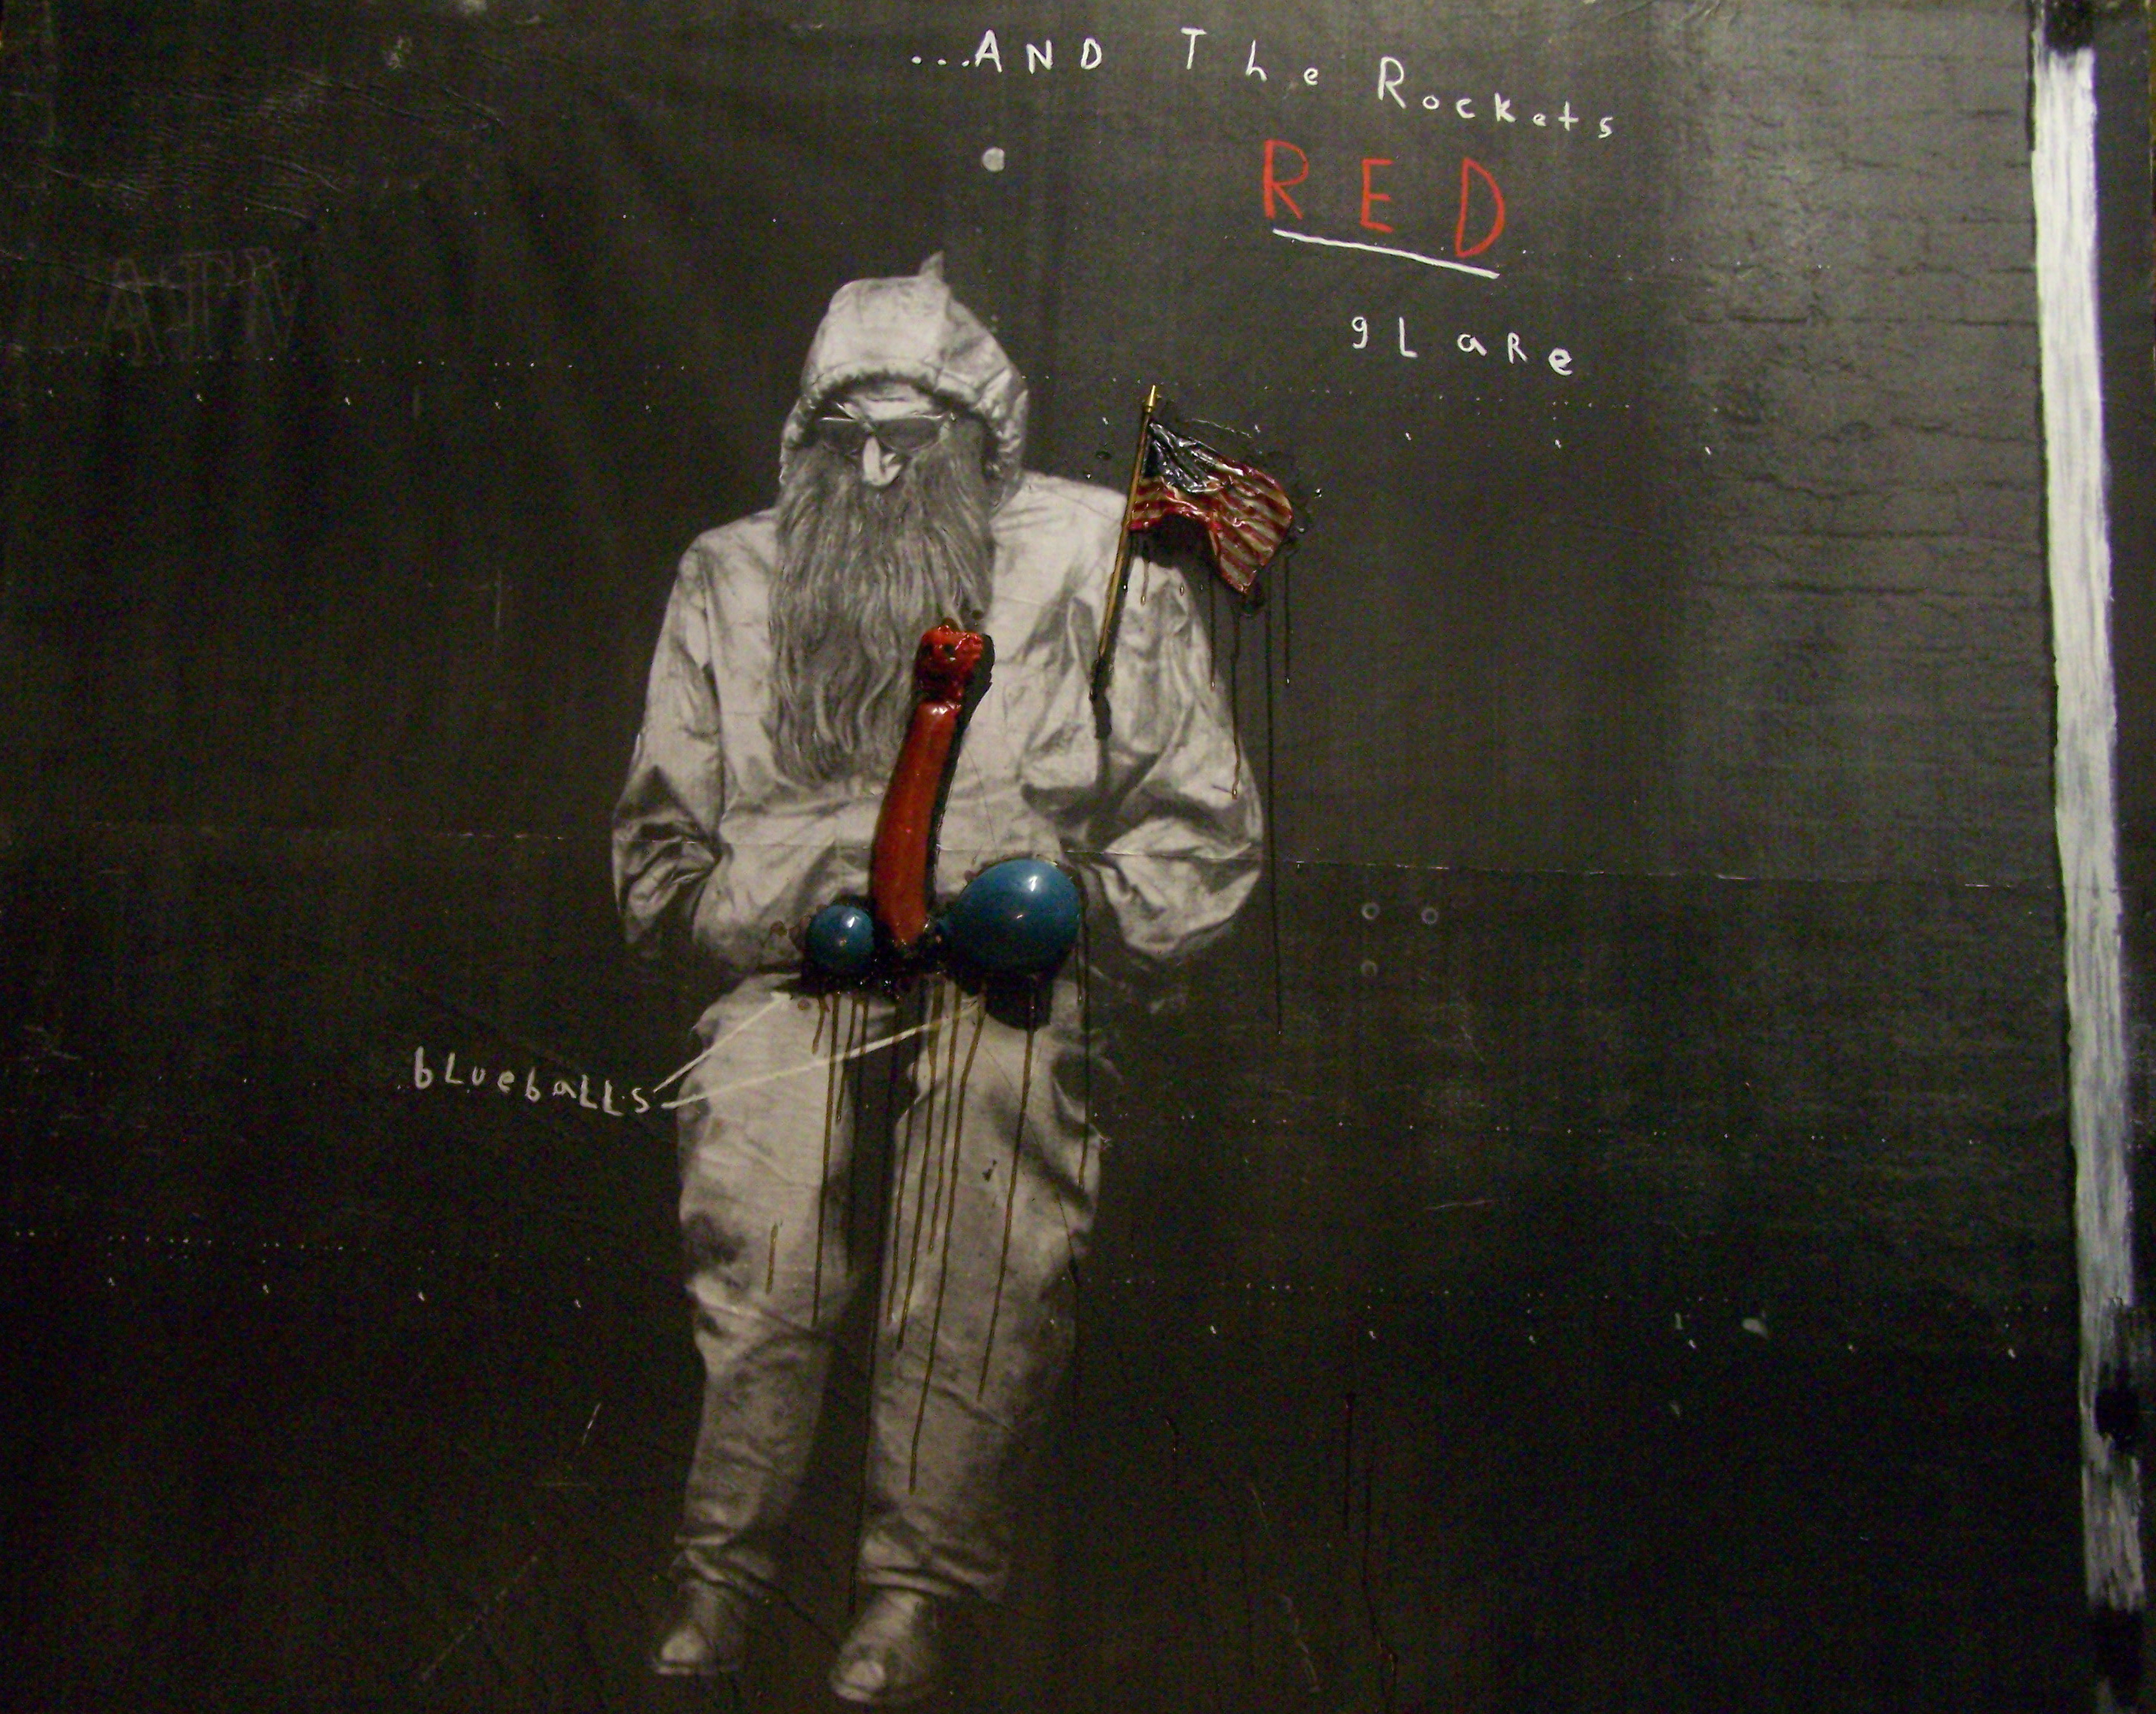 ...And The Rockets Red Glare by Chance Murray - Mixed media - 2013 1400.00